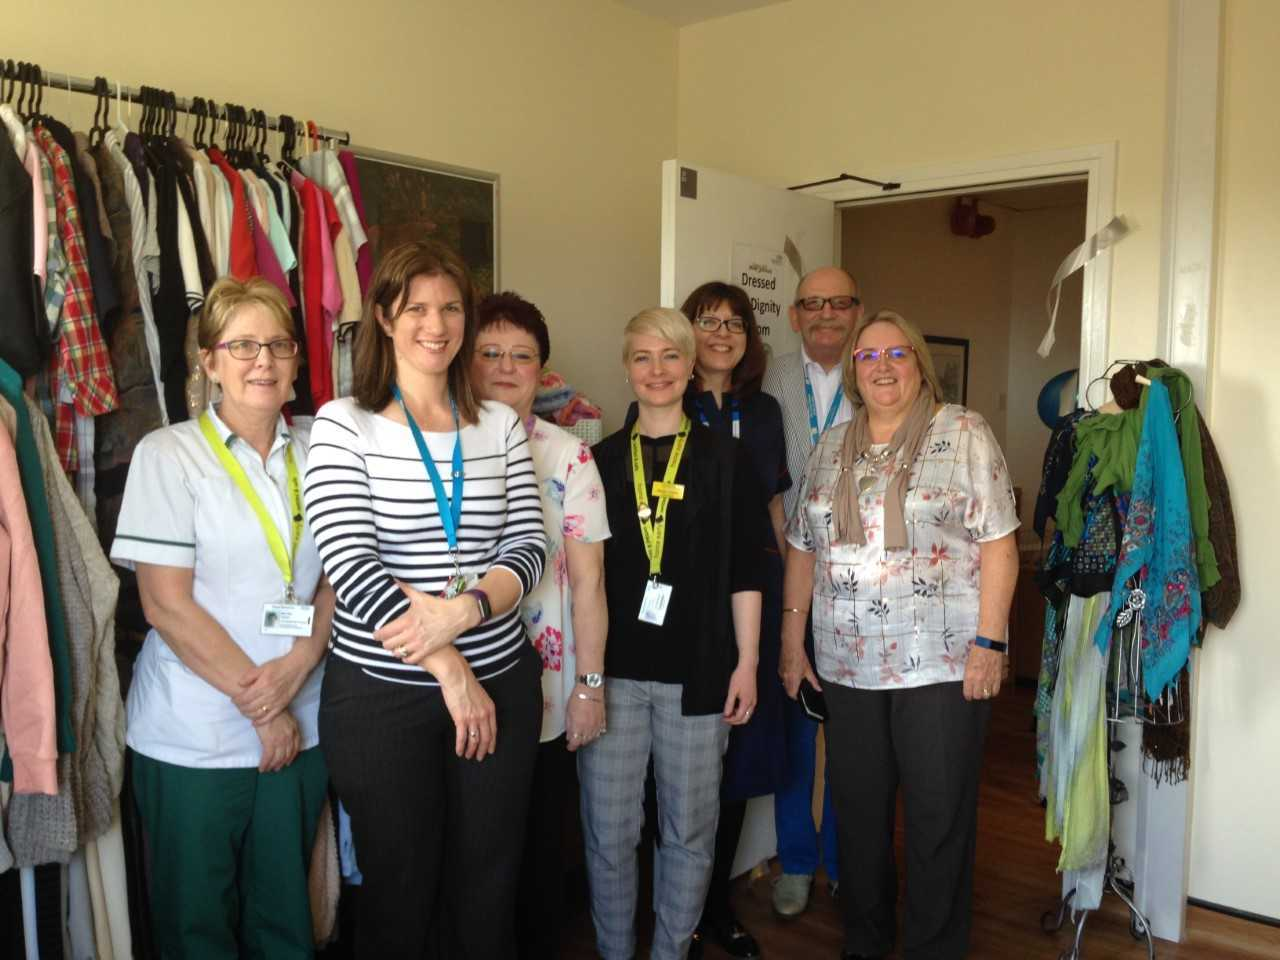 Royal Berkshire Hospital launches Dress for Dignity scheme